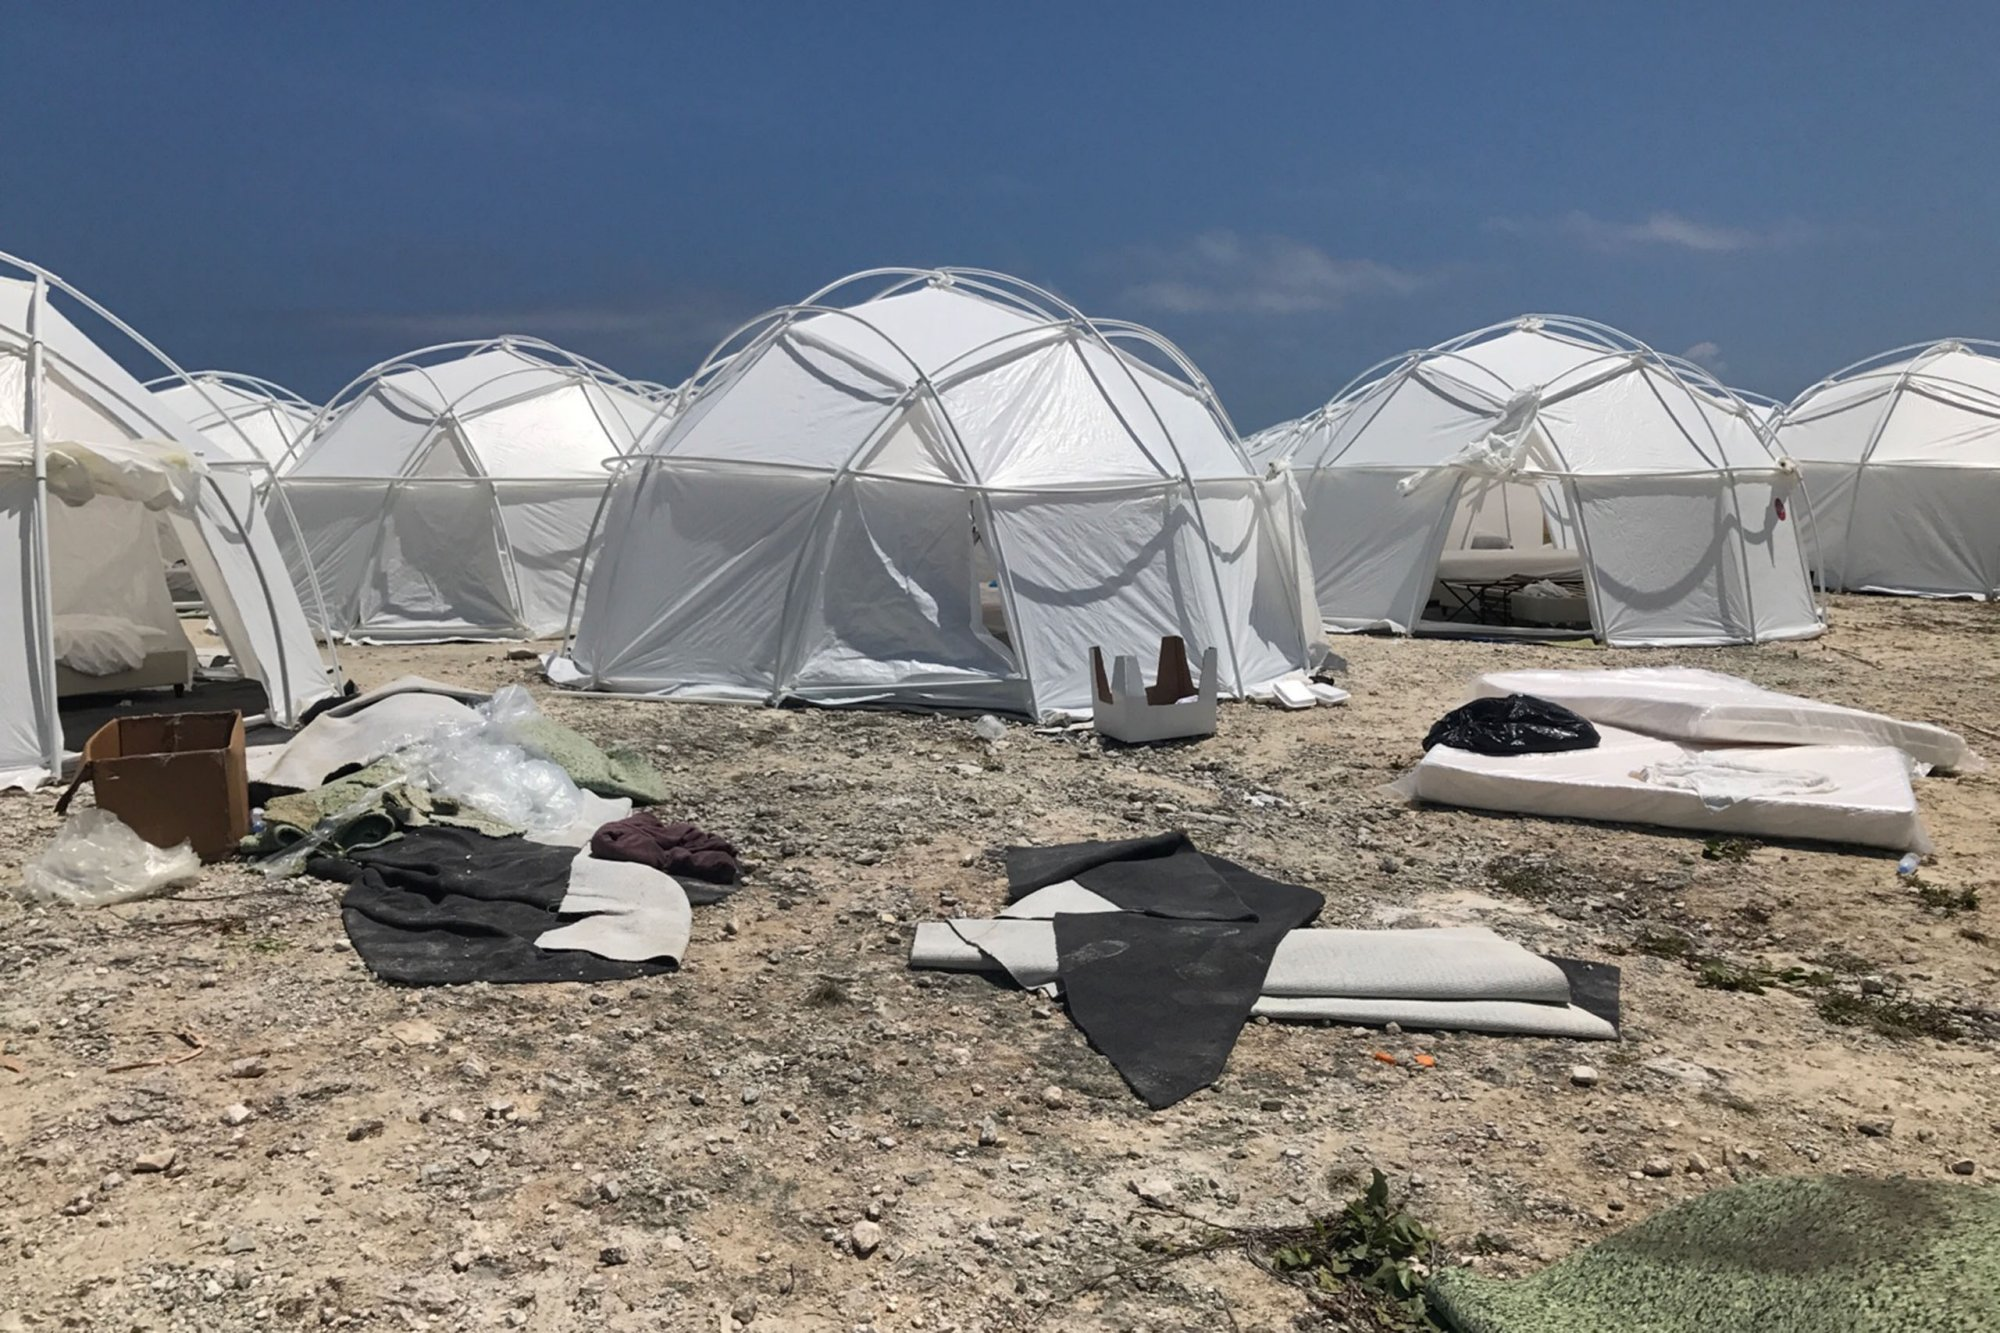 5 Things We Can Learn From Fyre Festival